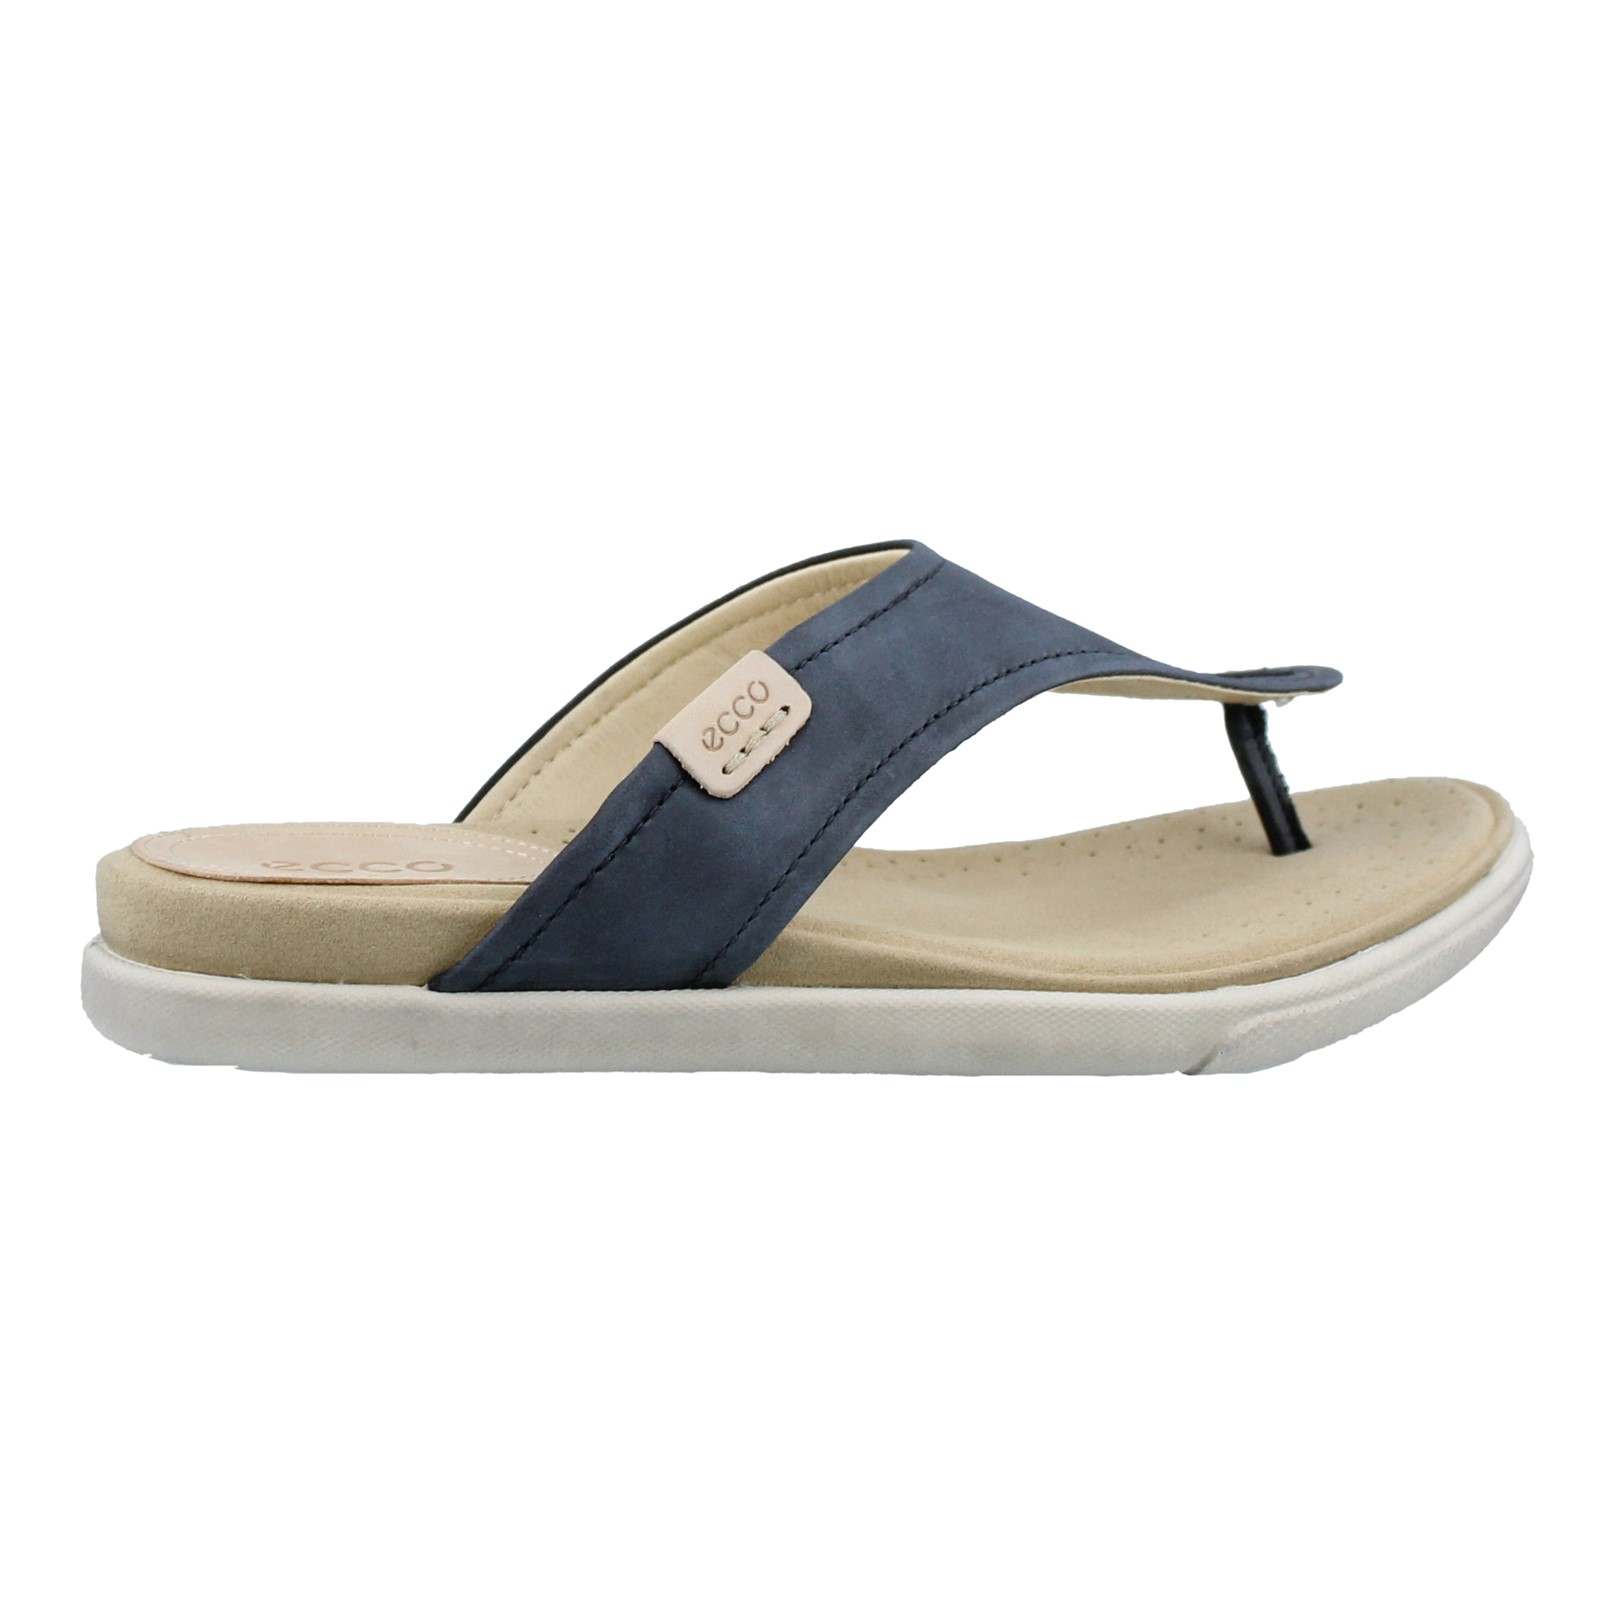 Women's Ecco, Damara Thong Sandals